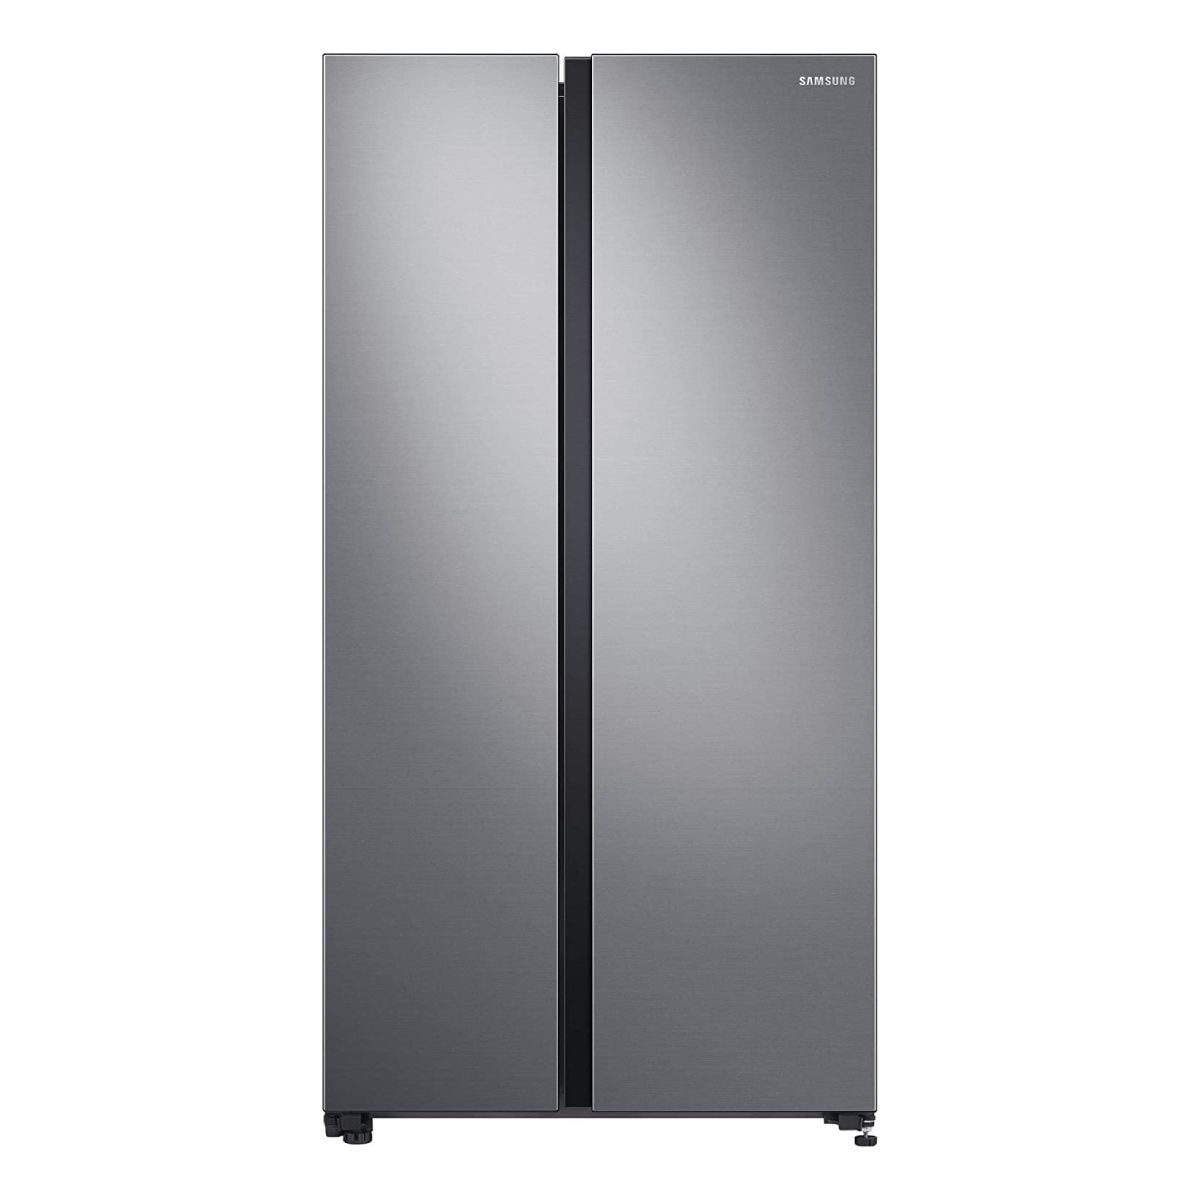 Samsung 700 L Inverter Frost Free Side-by-Side Refrigerator (RS72R5001M9TL)